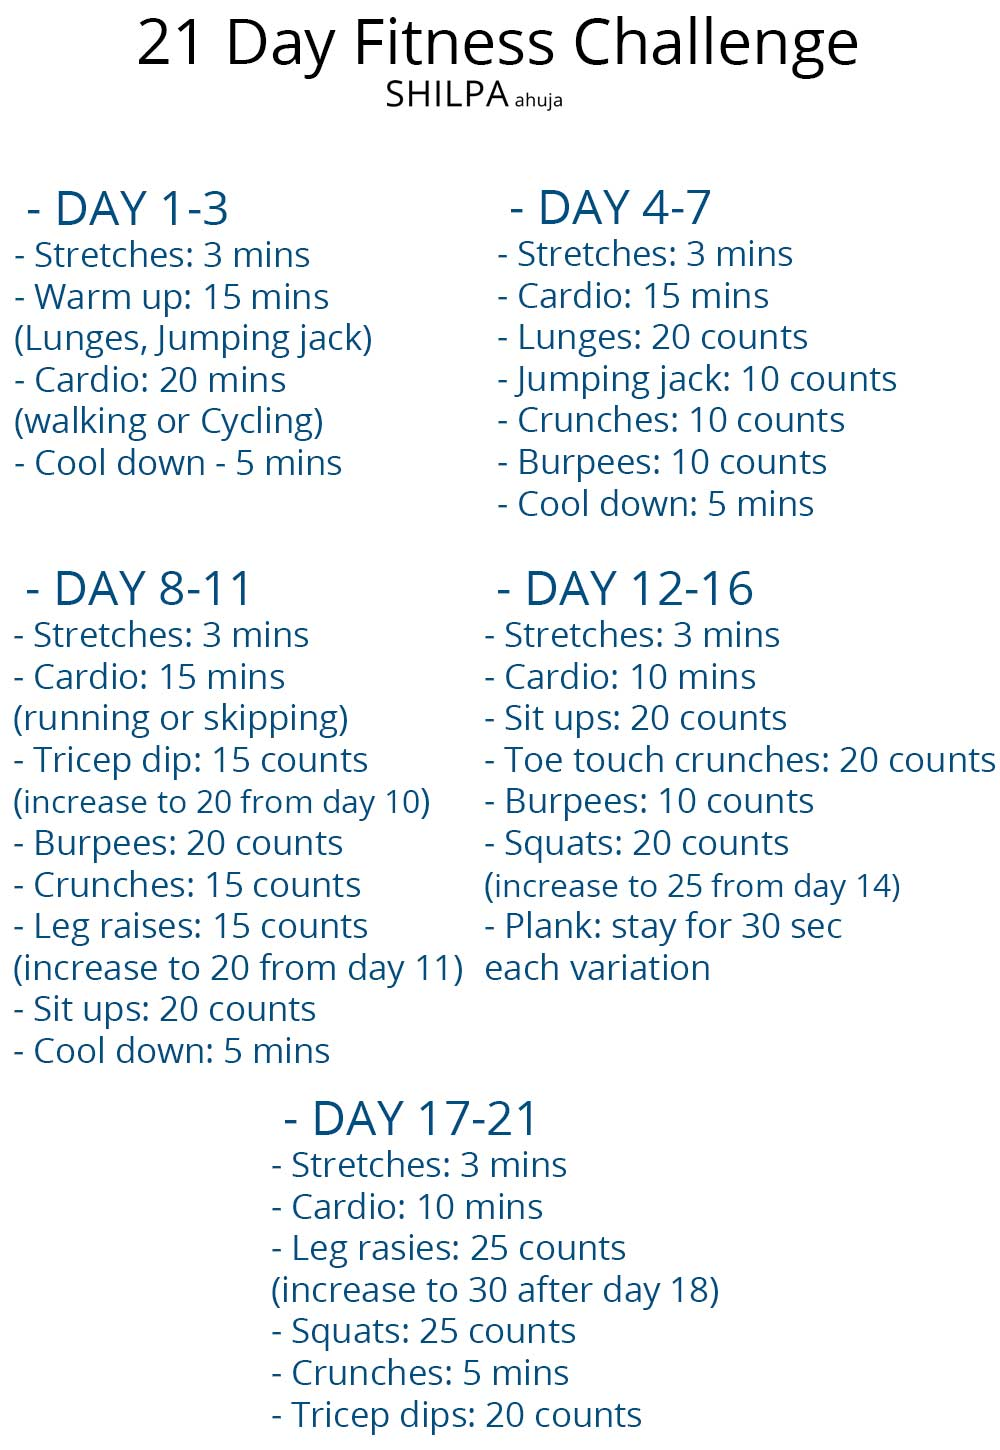 21-day-challenge-weight-loss-fitness-excerise-21-day-diet-results